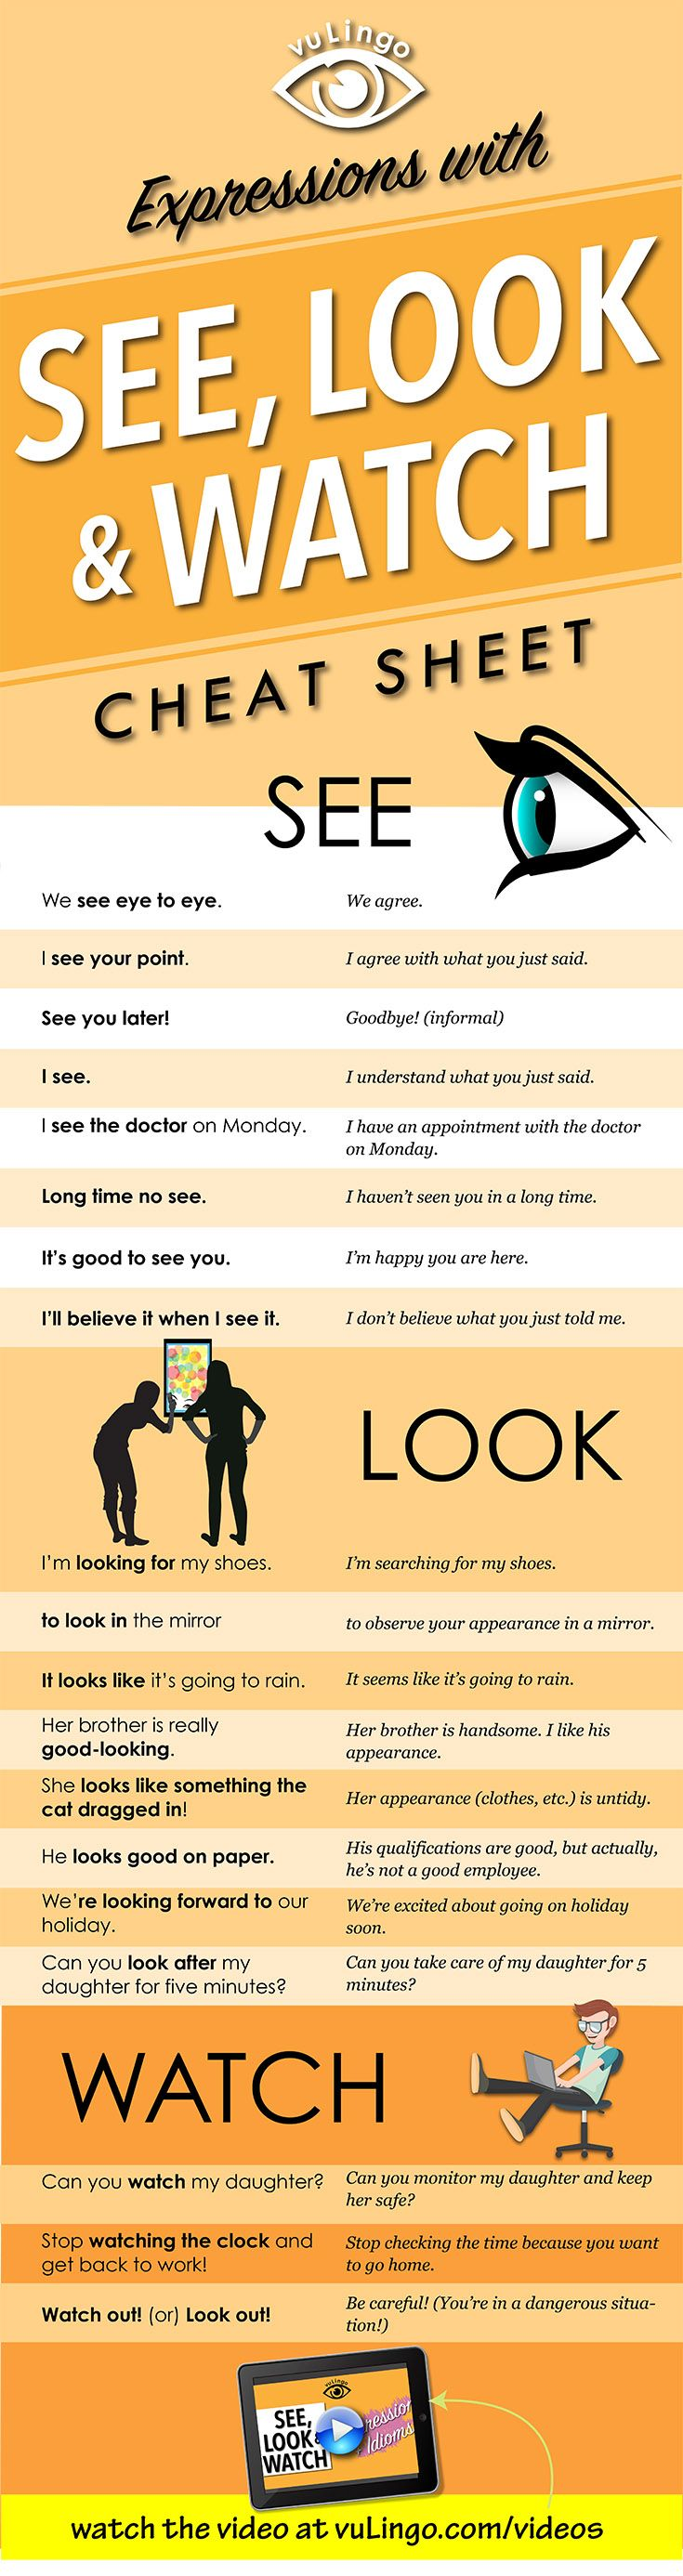 21 Expressions and Idioms with SEE LOOk & WATCH that Native English speakers use